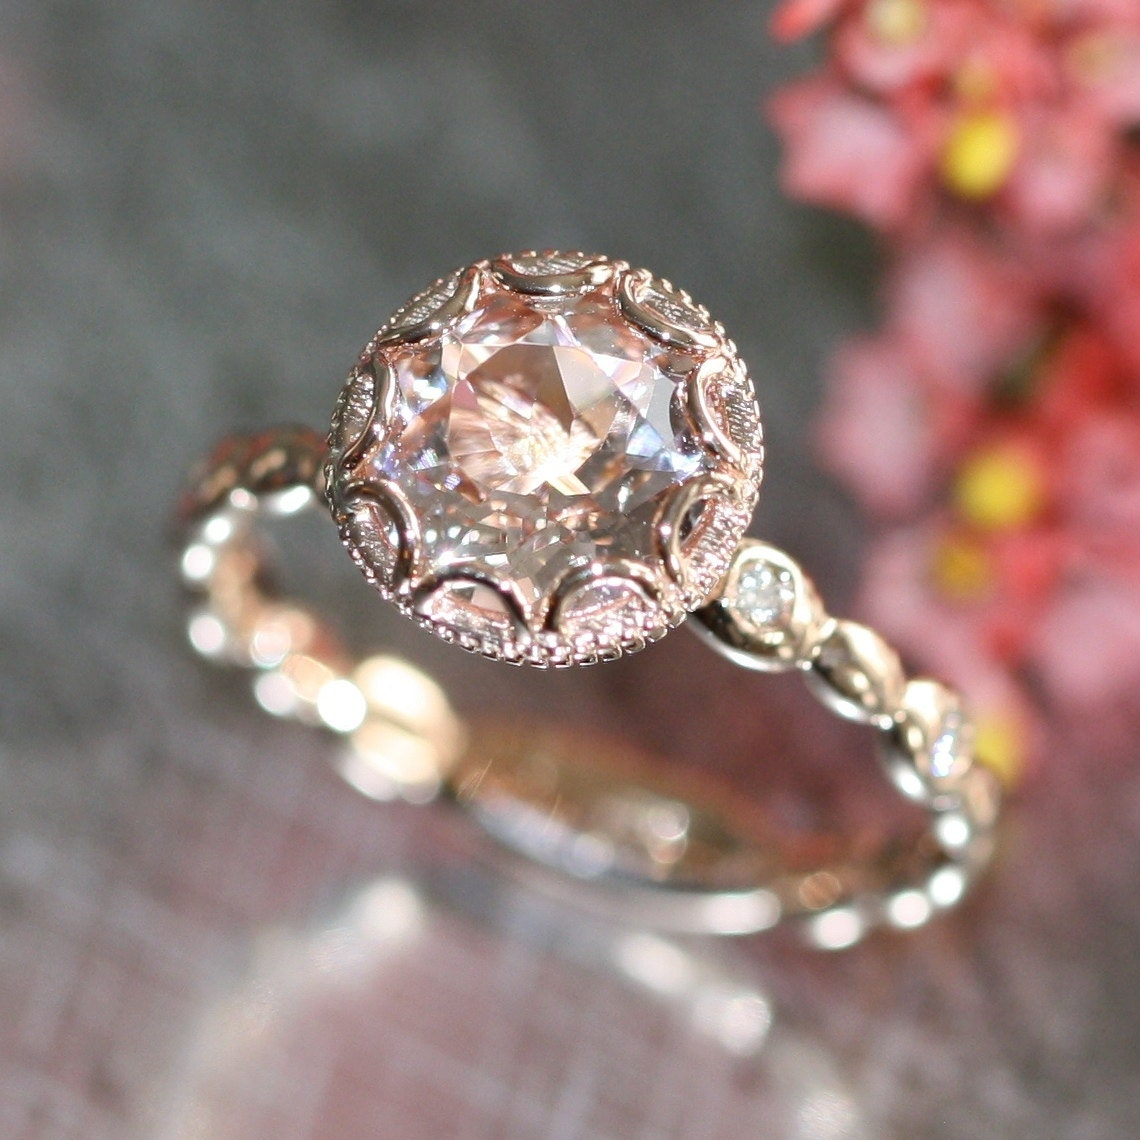 Floral Bands: Floral Morganite Engagement Ring In 14k Rose Gold By